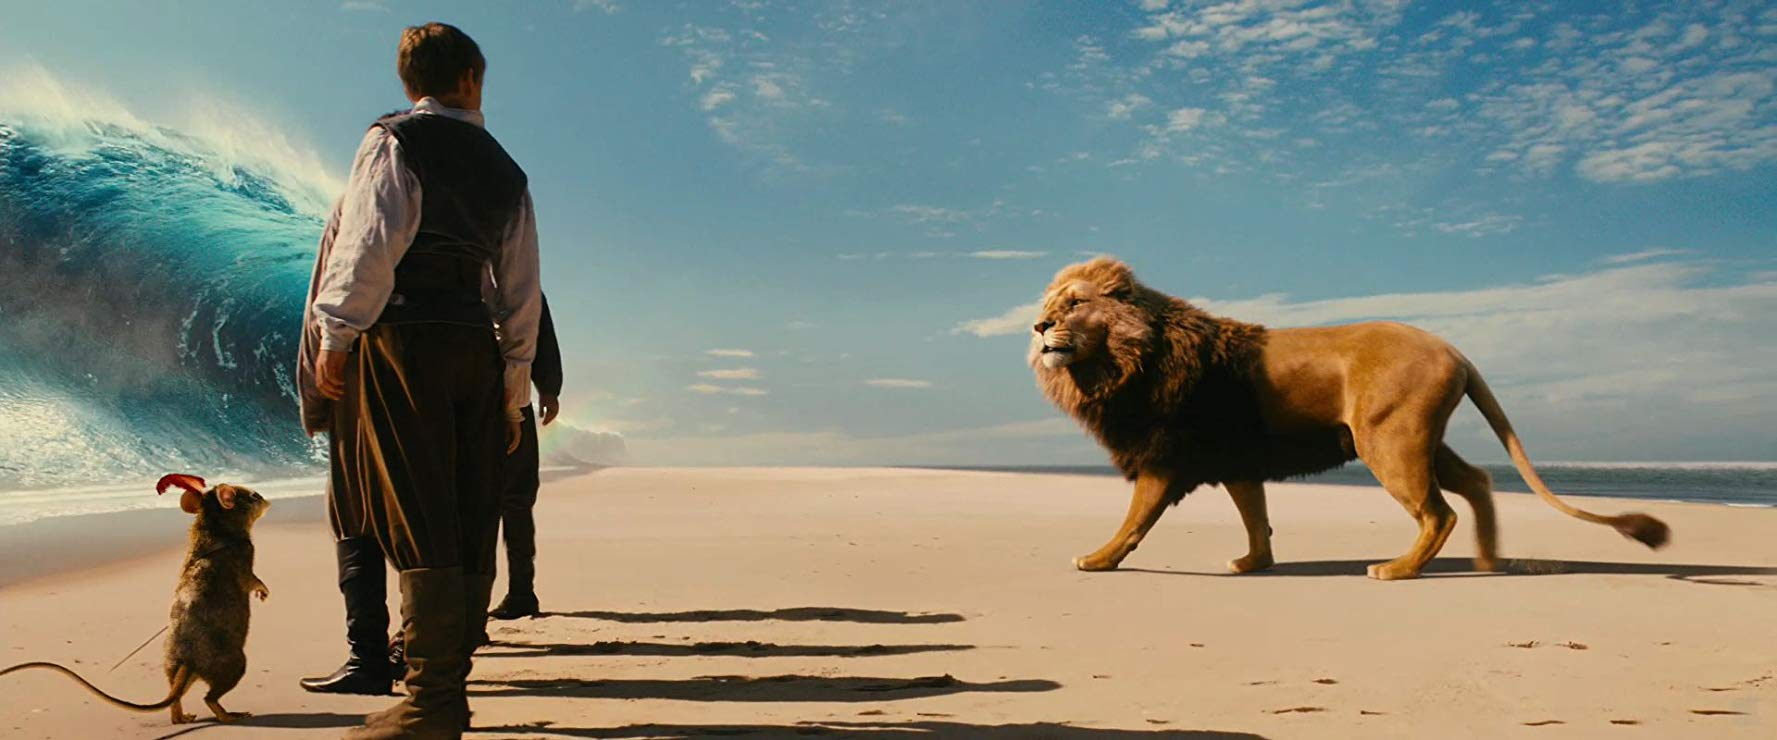 (l to r) Reepicheep, Eustace (Will Poulter) (back to camera) and Aslan in The Chronicles of Narnia: The Voyage of the Dawn Treader (2010)